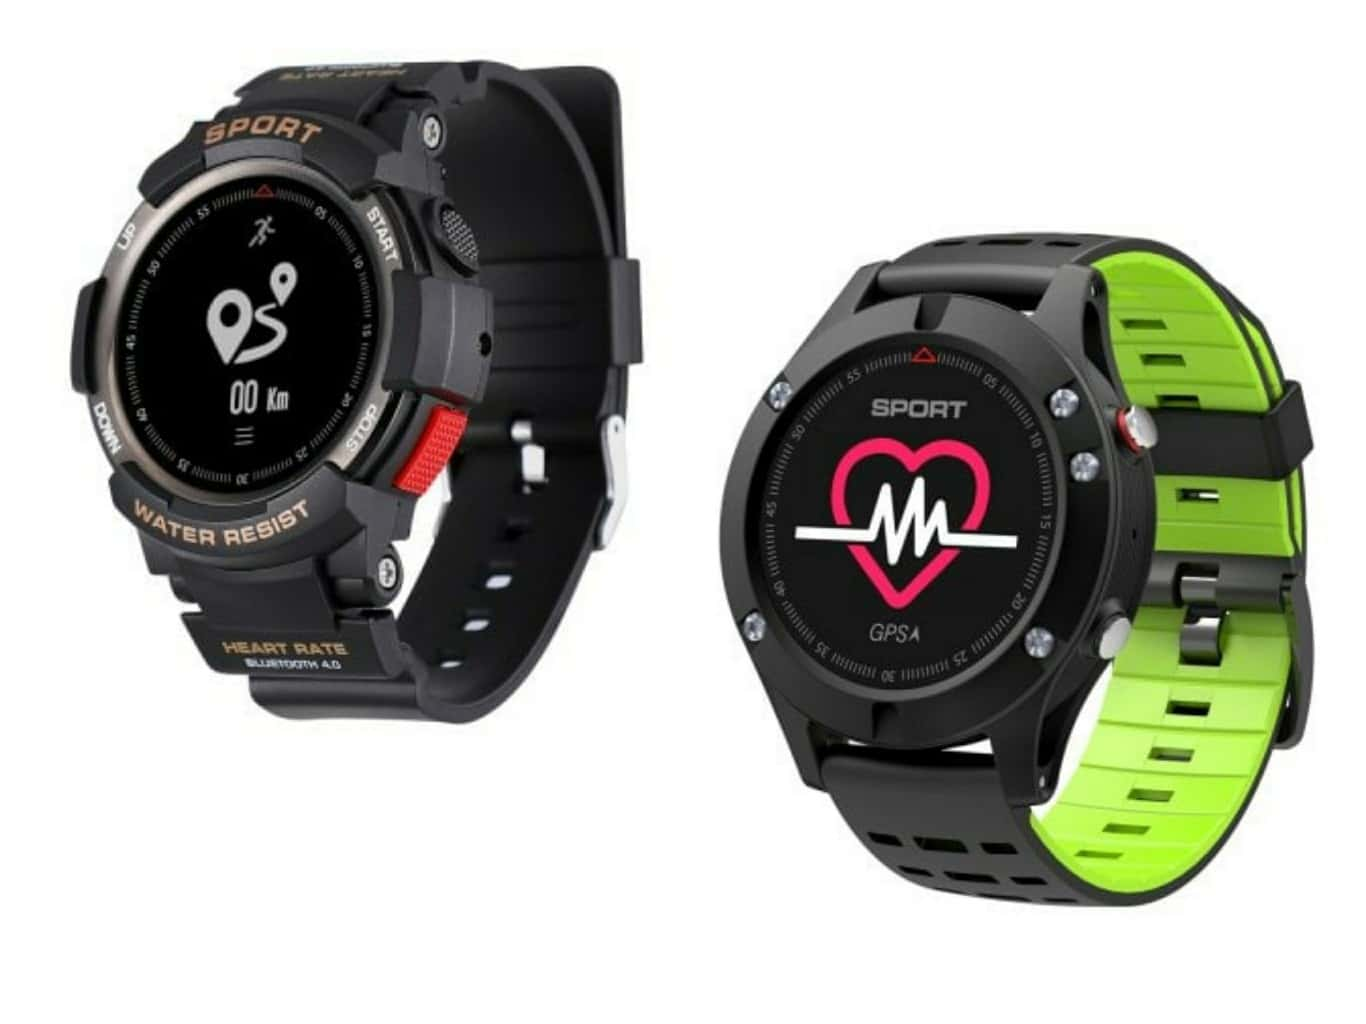 mode in for smartwatch fitness android ip smartphones ios sport rug item waterproof tracker smart bluetooth outdoor rugged from watch watches consumer